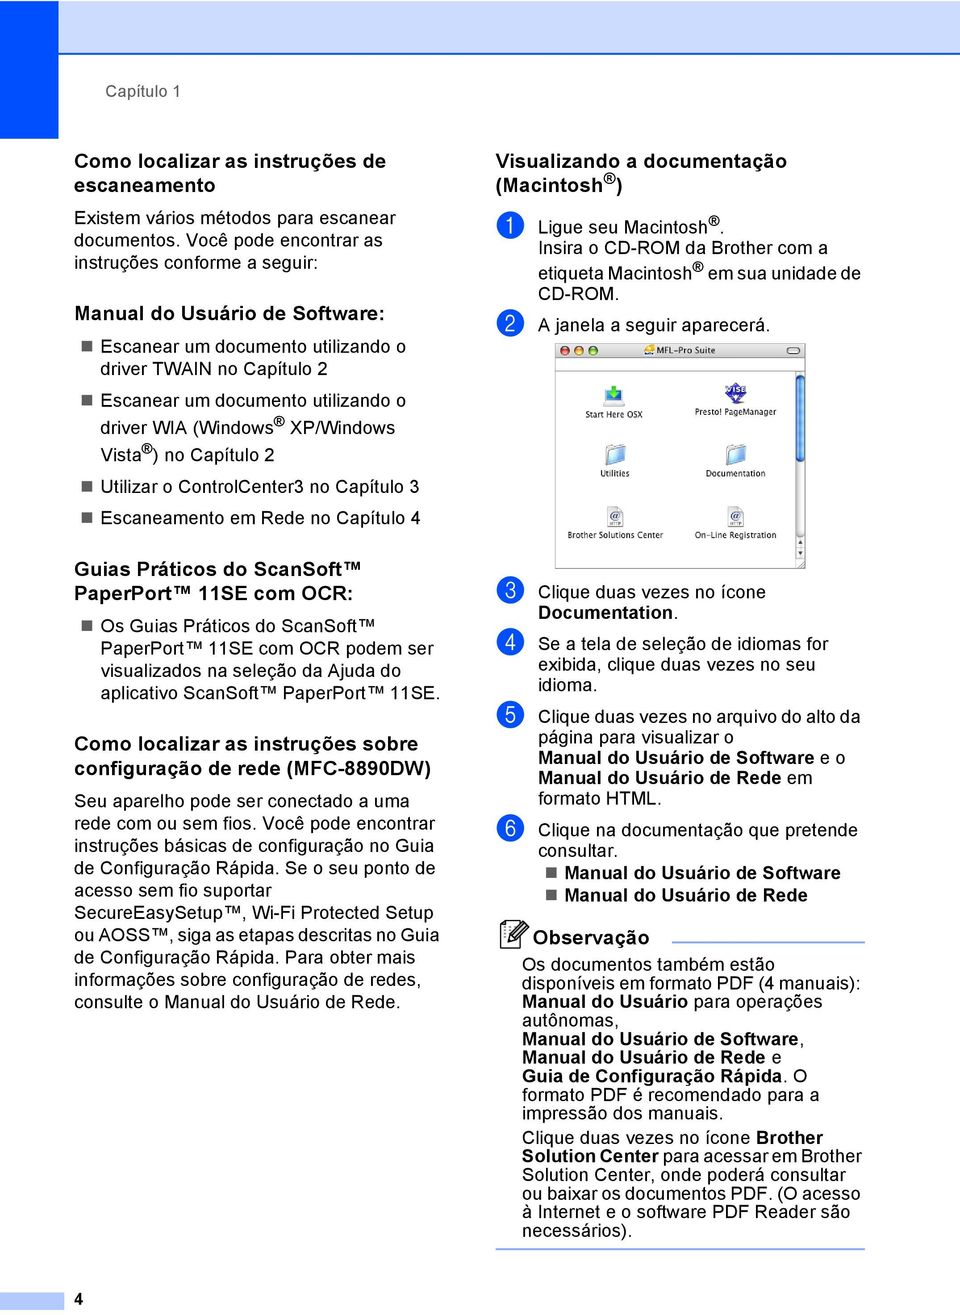 (Windows XP/Windows Vista ) no Capítulo 2 Utilizar o ControlCenter3 no Capítulo 3 Escaneamento em Rede no Capítulo 4 Guias Práticos do ScanSoft PaperPort 11SE com OCR: 1 Os Guias Práticos do ScanSoft